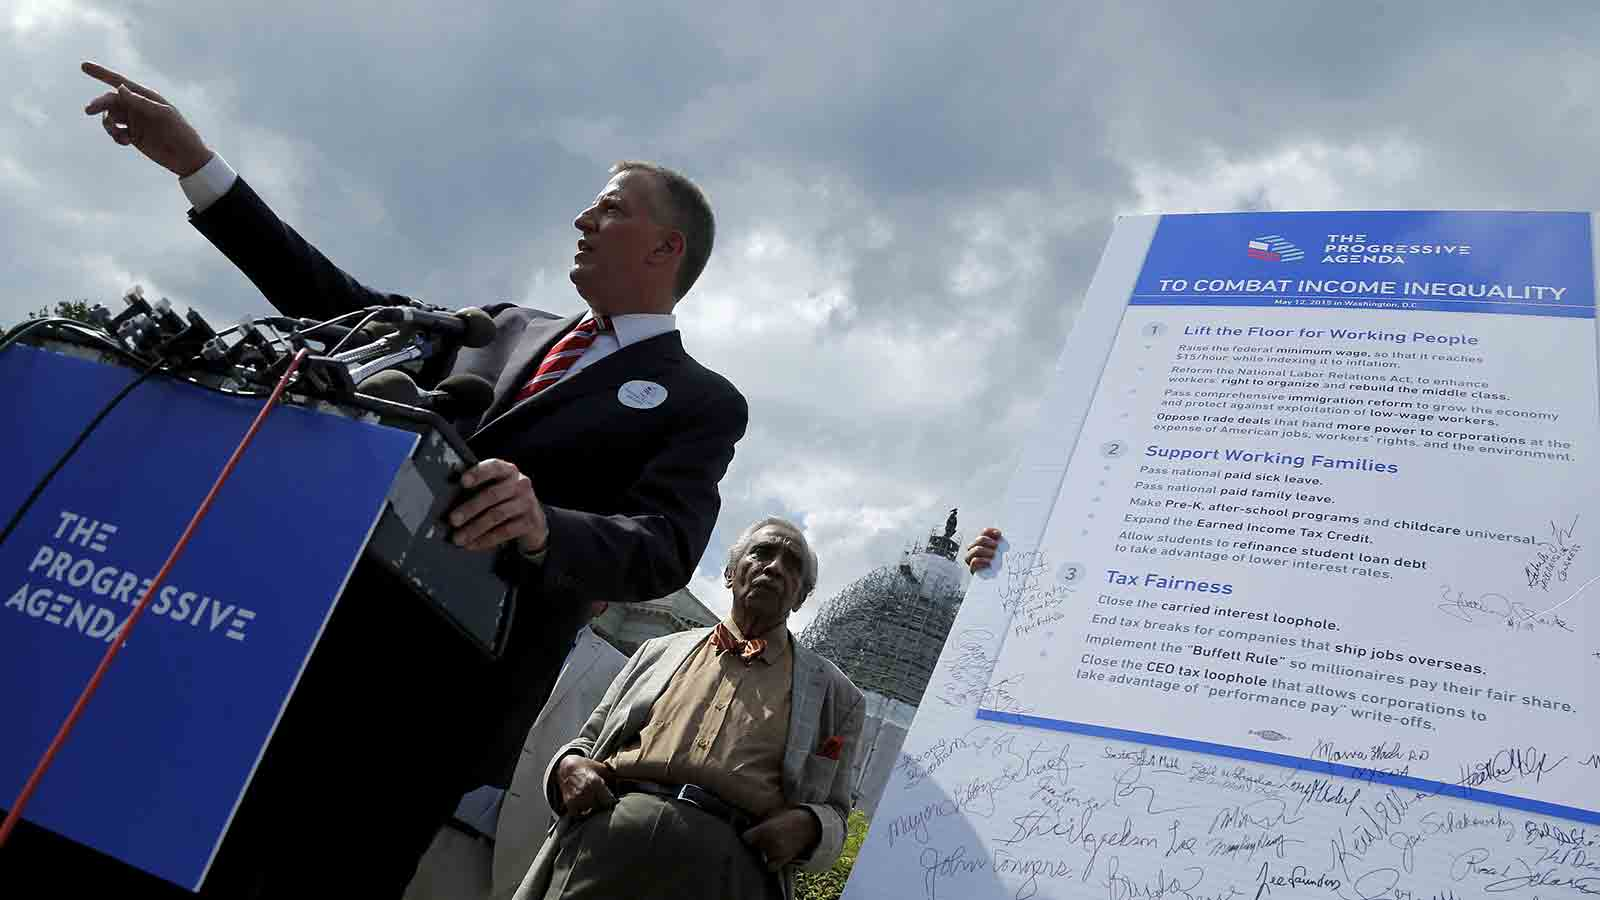 New York City Mayor Bill de Blasio (L) holds a news conference on his progressive agenda against income inequality with labor leaders and elected officials outside the U.S. Capitol in Washington May 12, 2015. Also pictured is U.S. Representative Charlie Rangel (D-NY) (C).